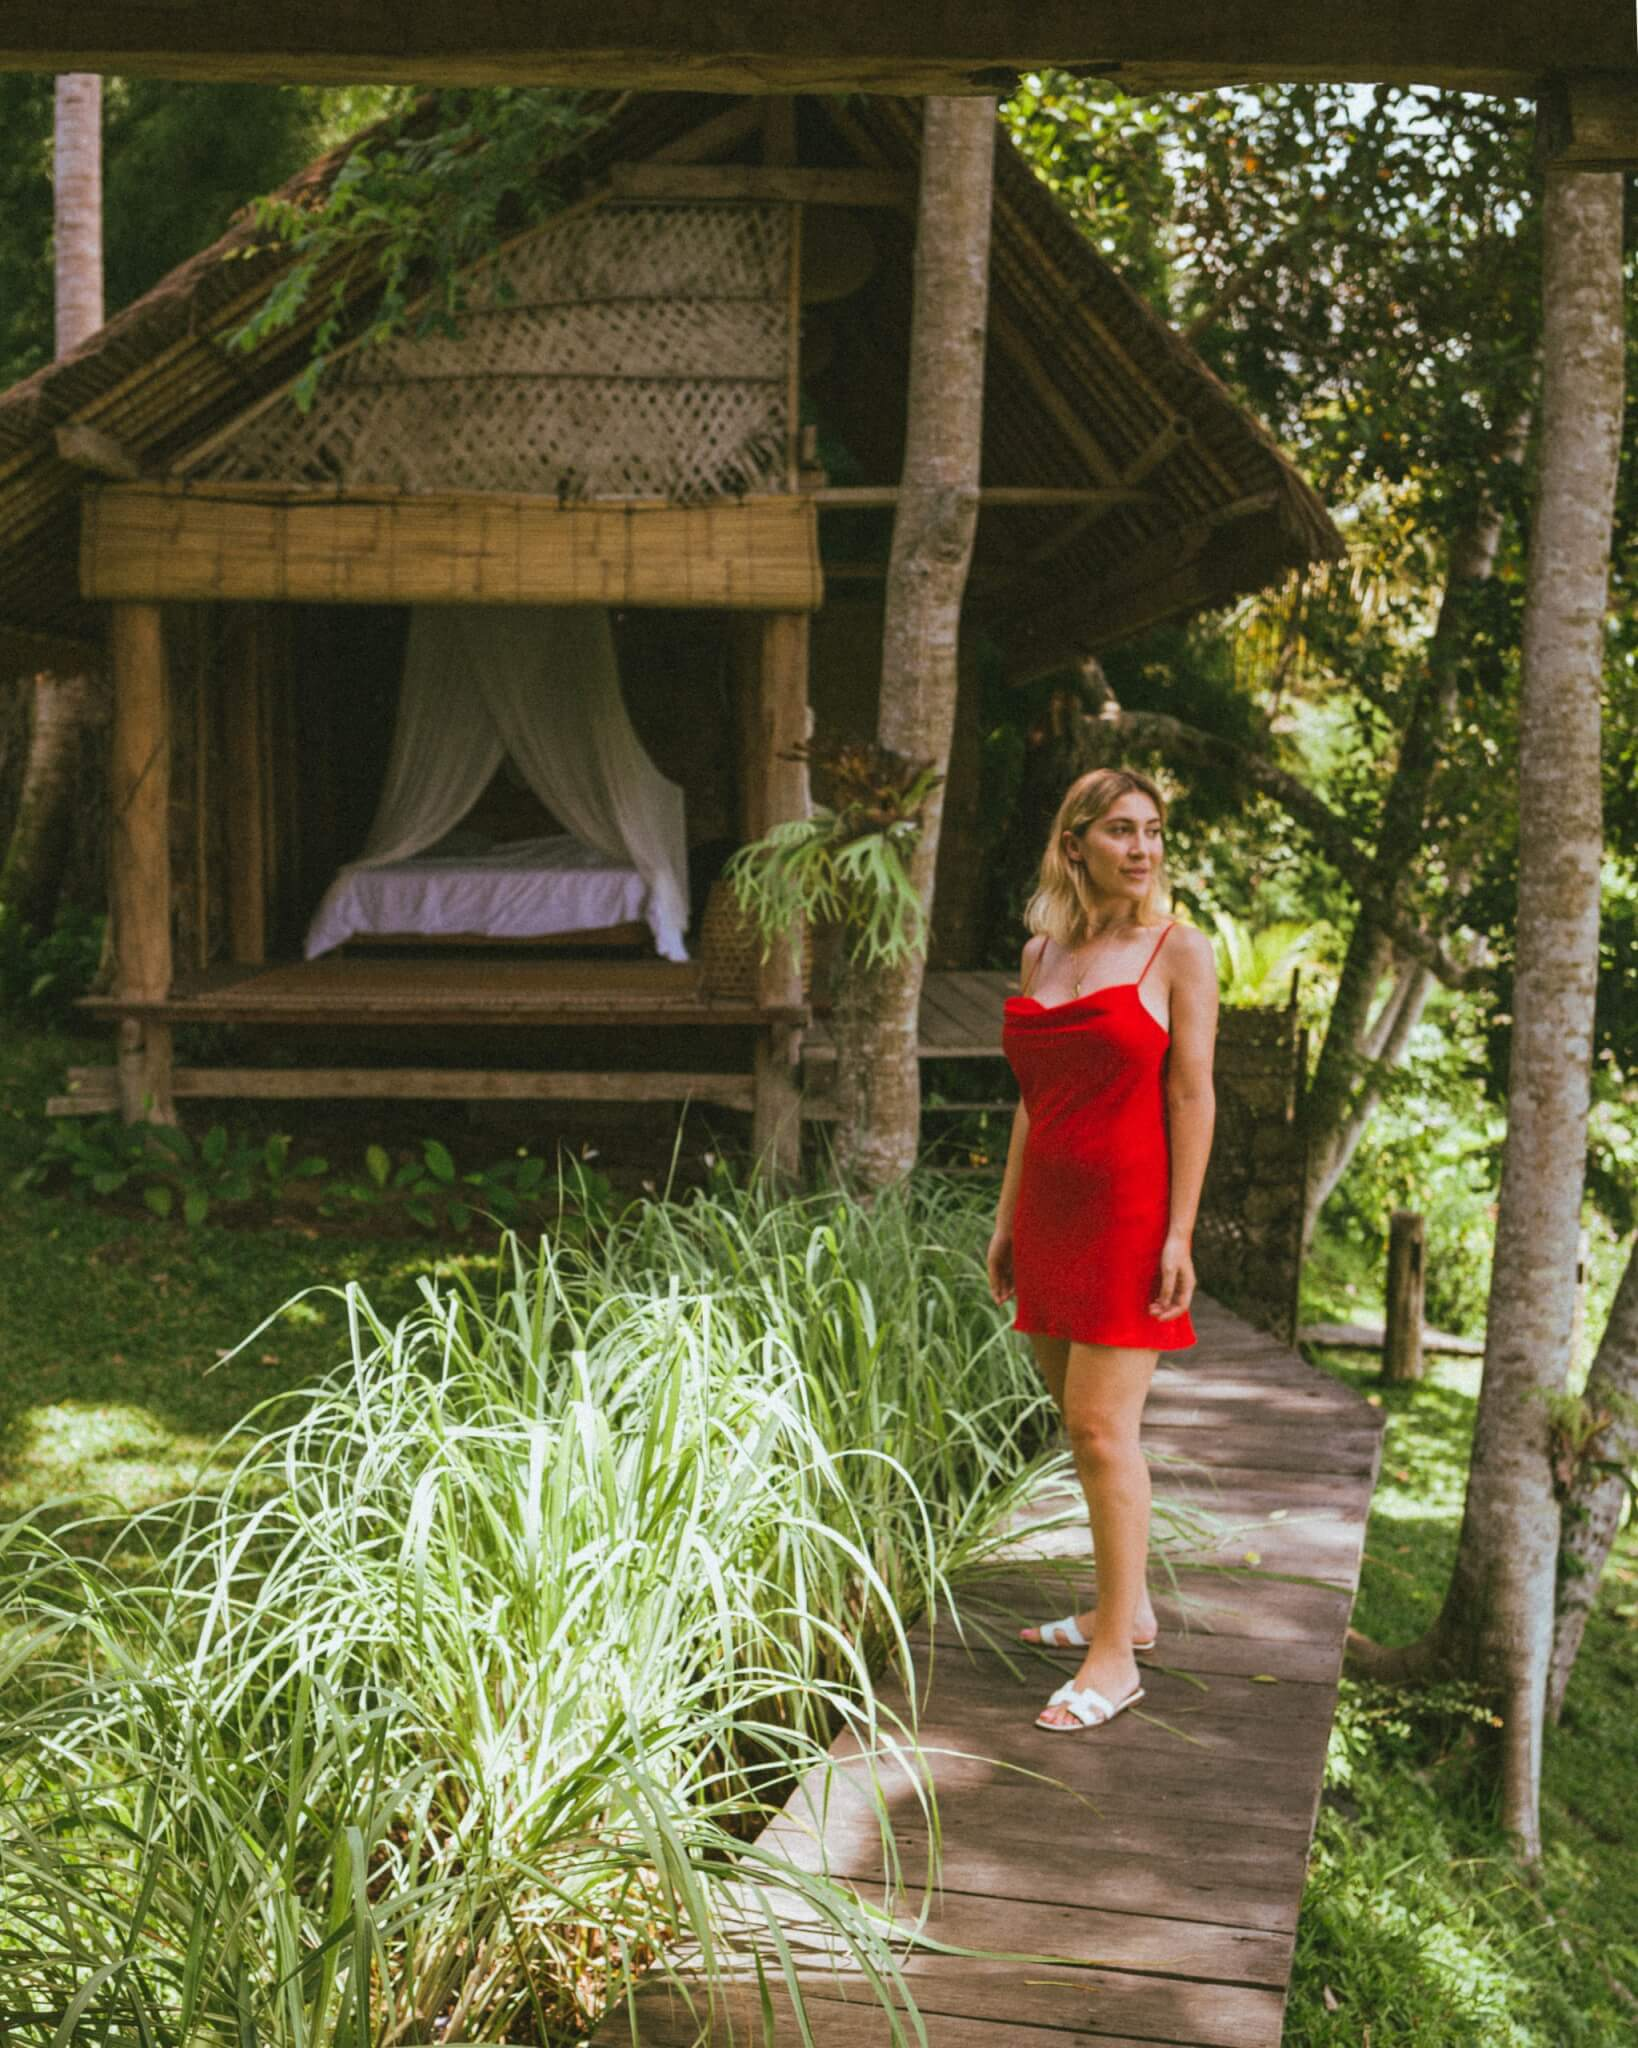 Finding a home in Bali